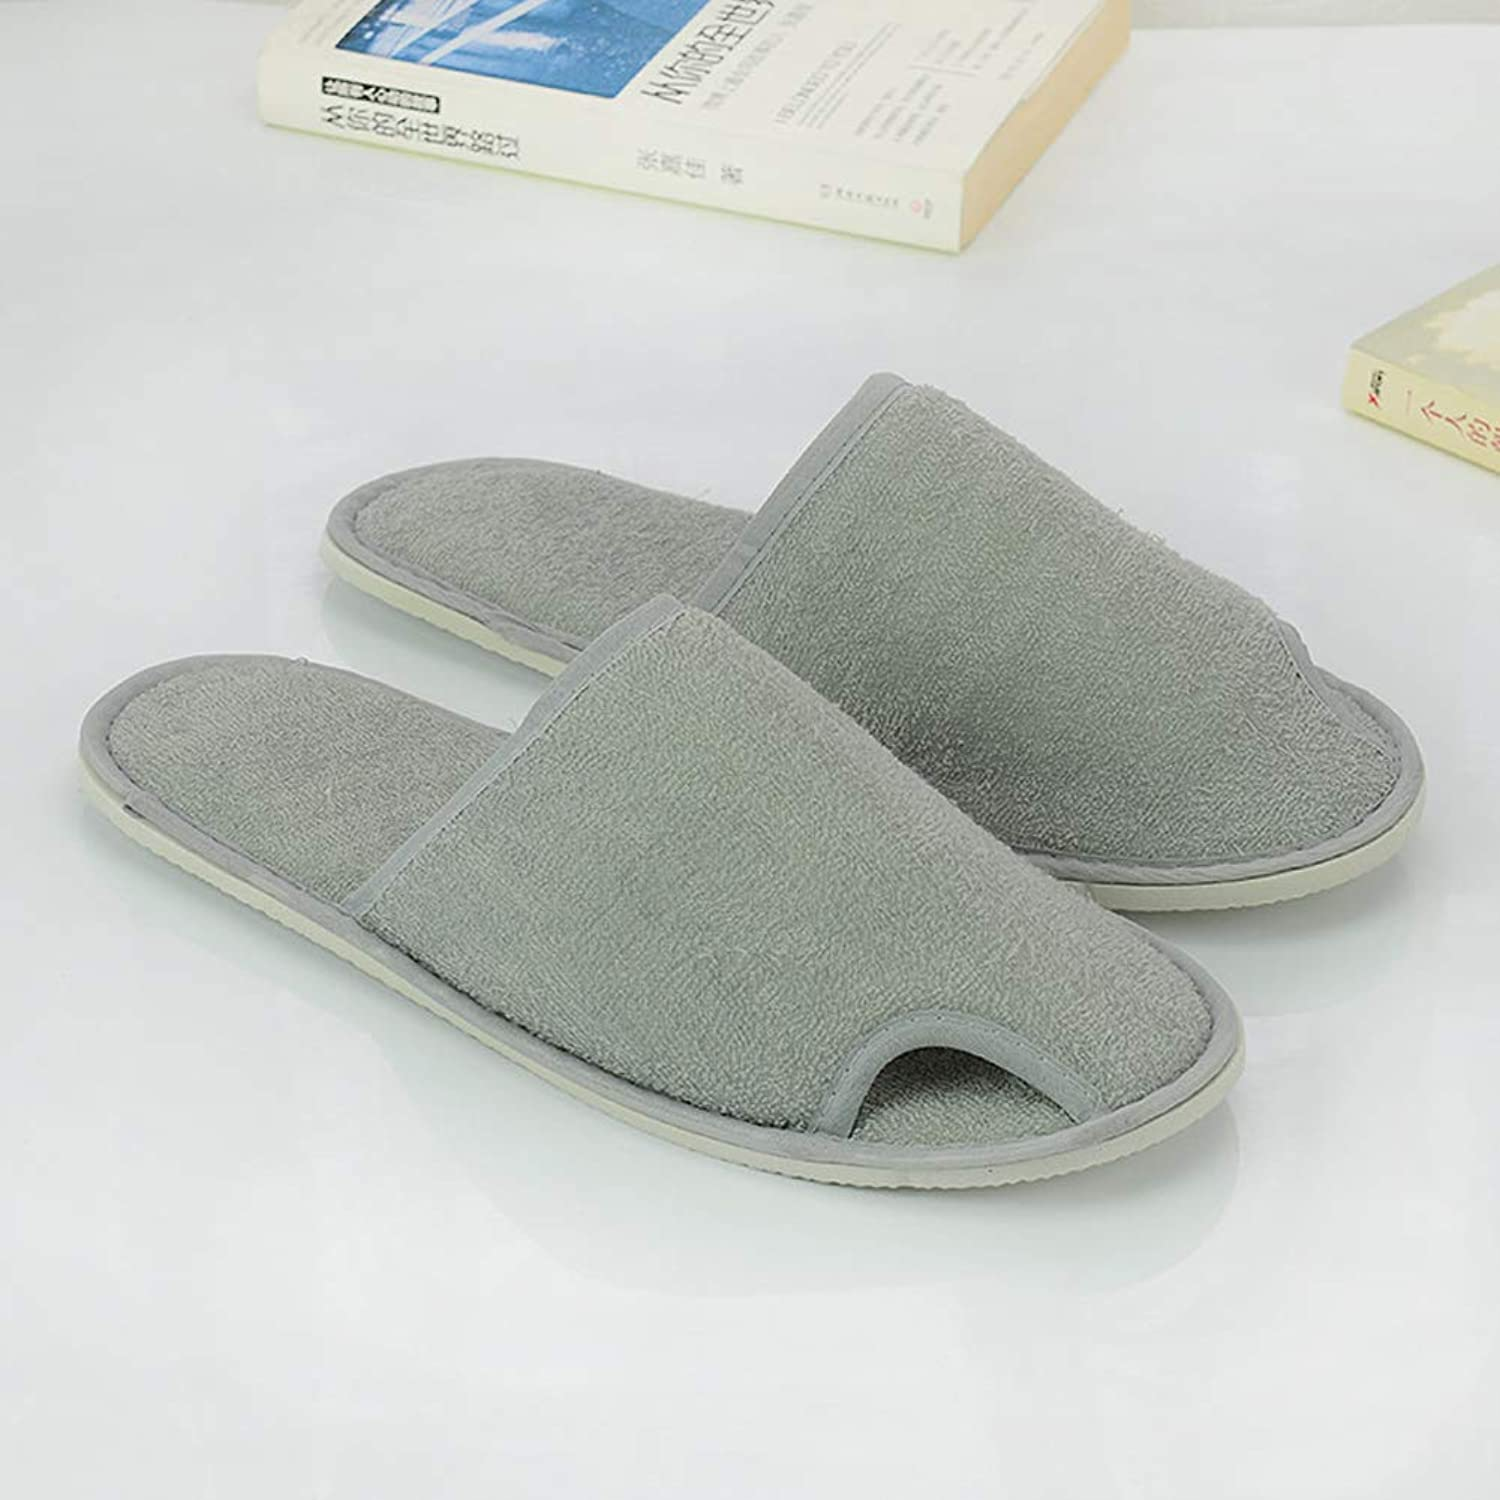 Hotel Slippers Disposable Unisex Home Spa Towel Slippers,B,20Pair